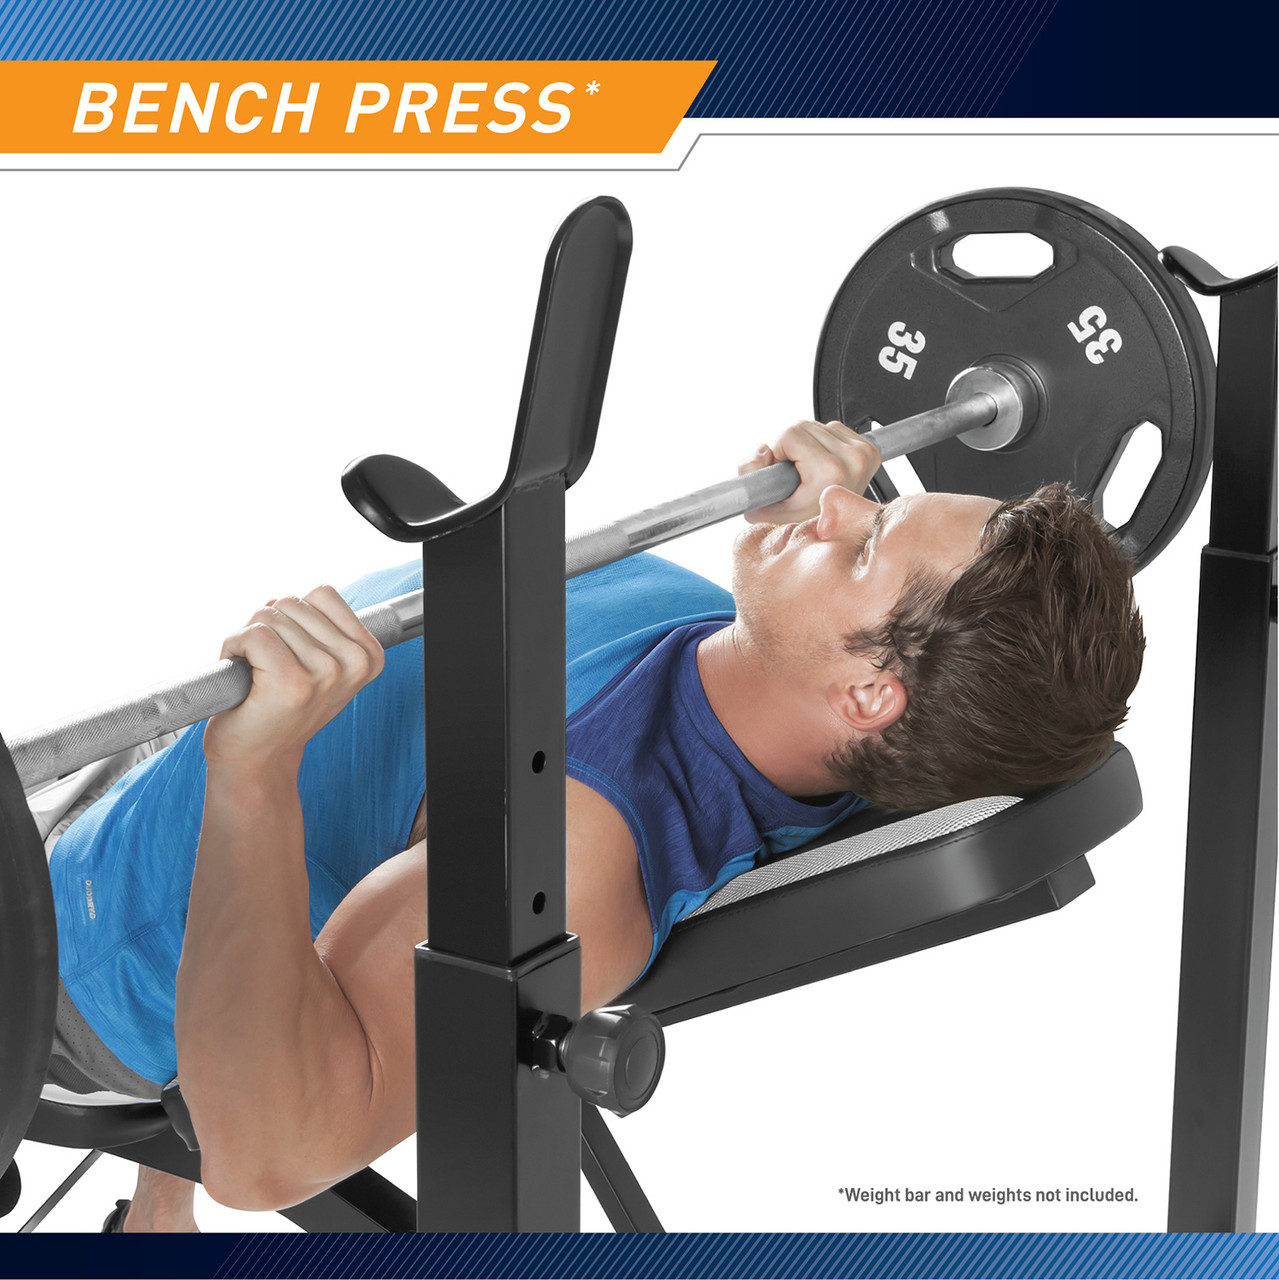 Build stronger and bulkier arms with this multifunctional bench that's also equipped with adjustable crutches with quick release pop pin knobs.